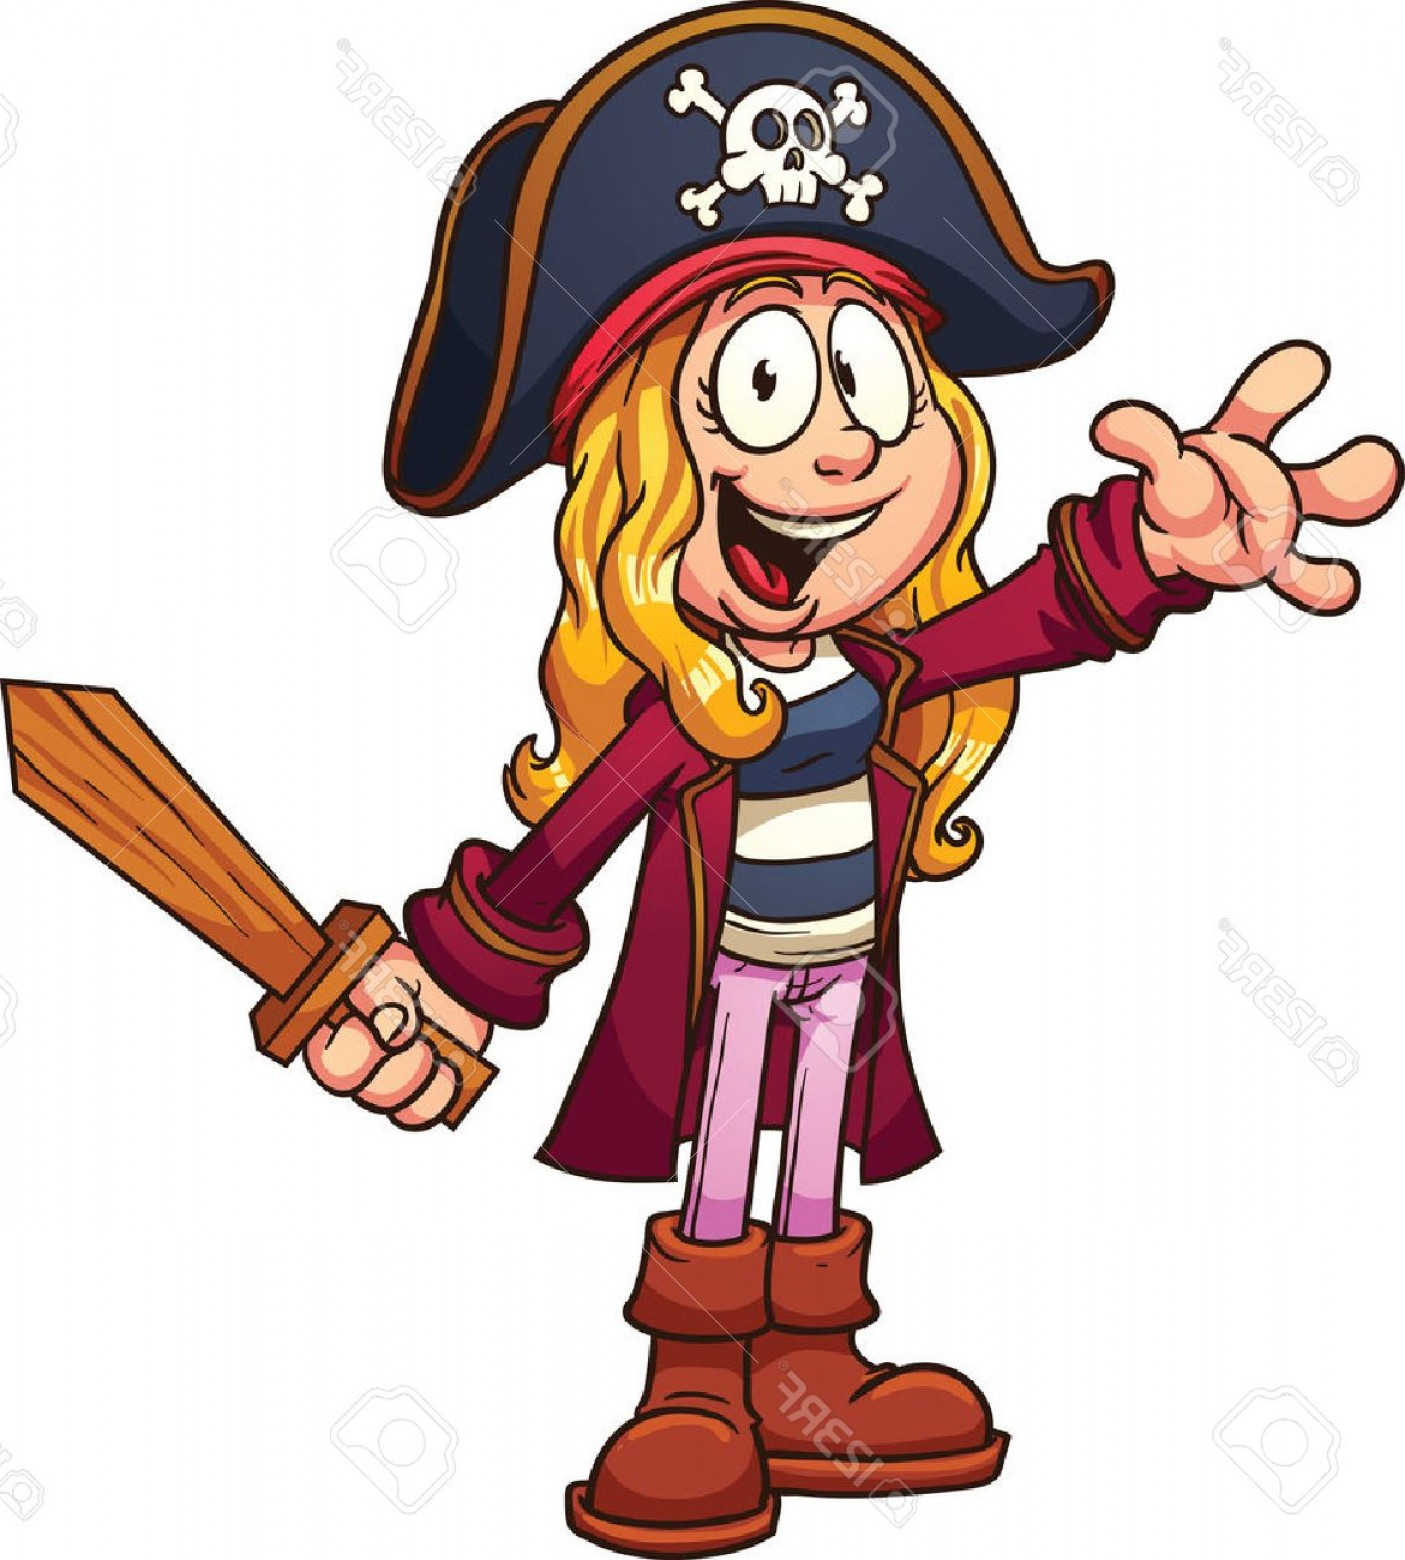 Cartoon Pirate Vector Art: Photostock Vector Cartoon Pirate Girl Clip Art Illustration With Simple Gradients All In A Single Layer